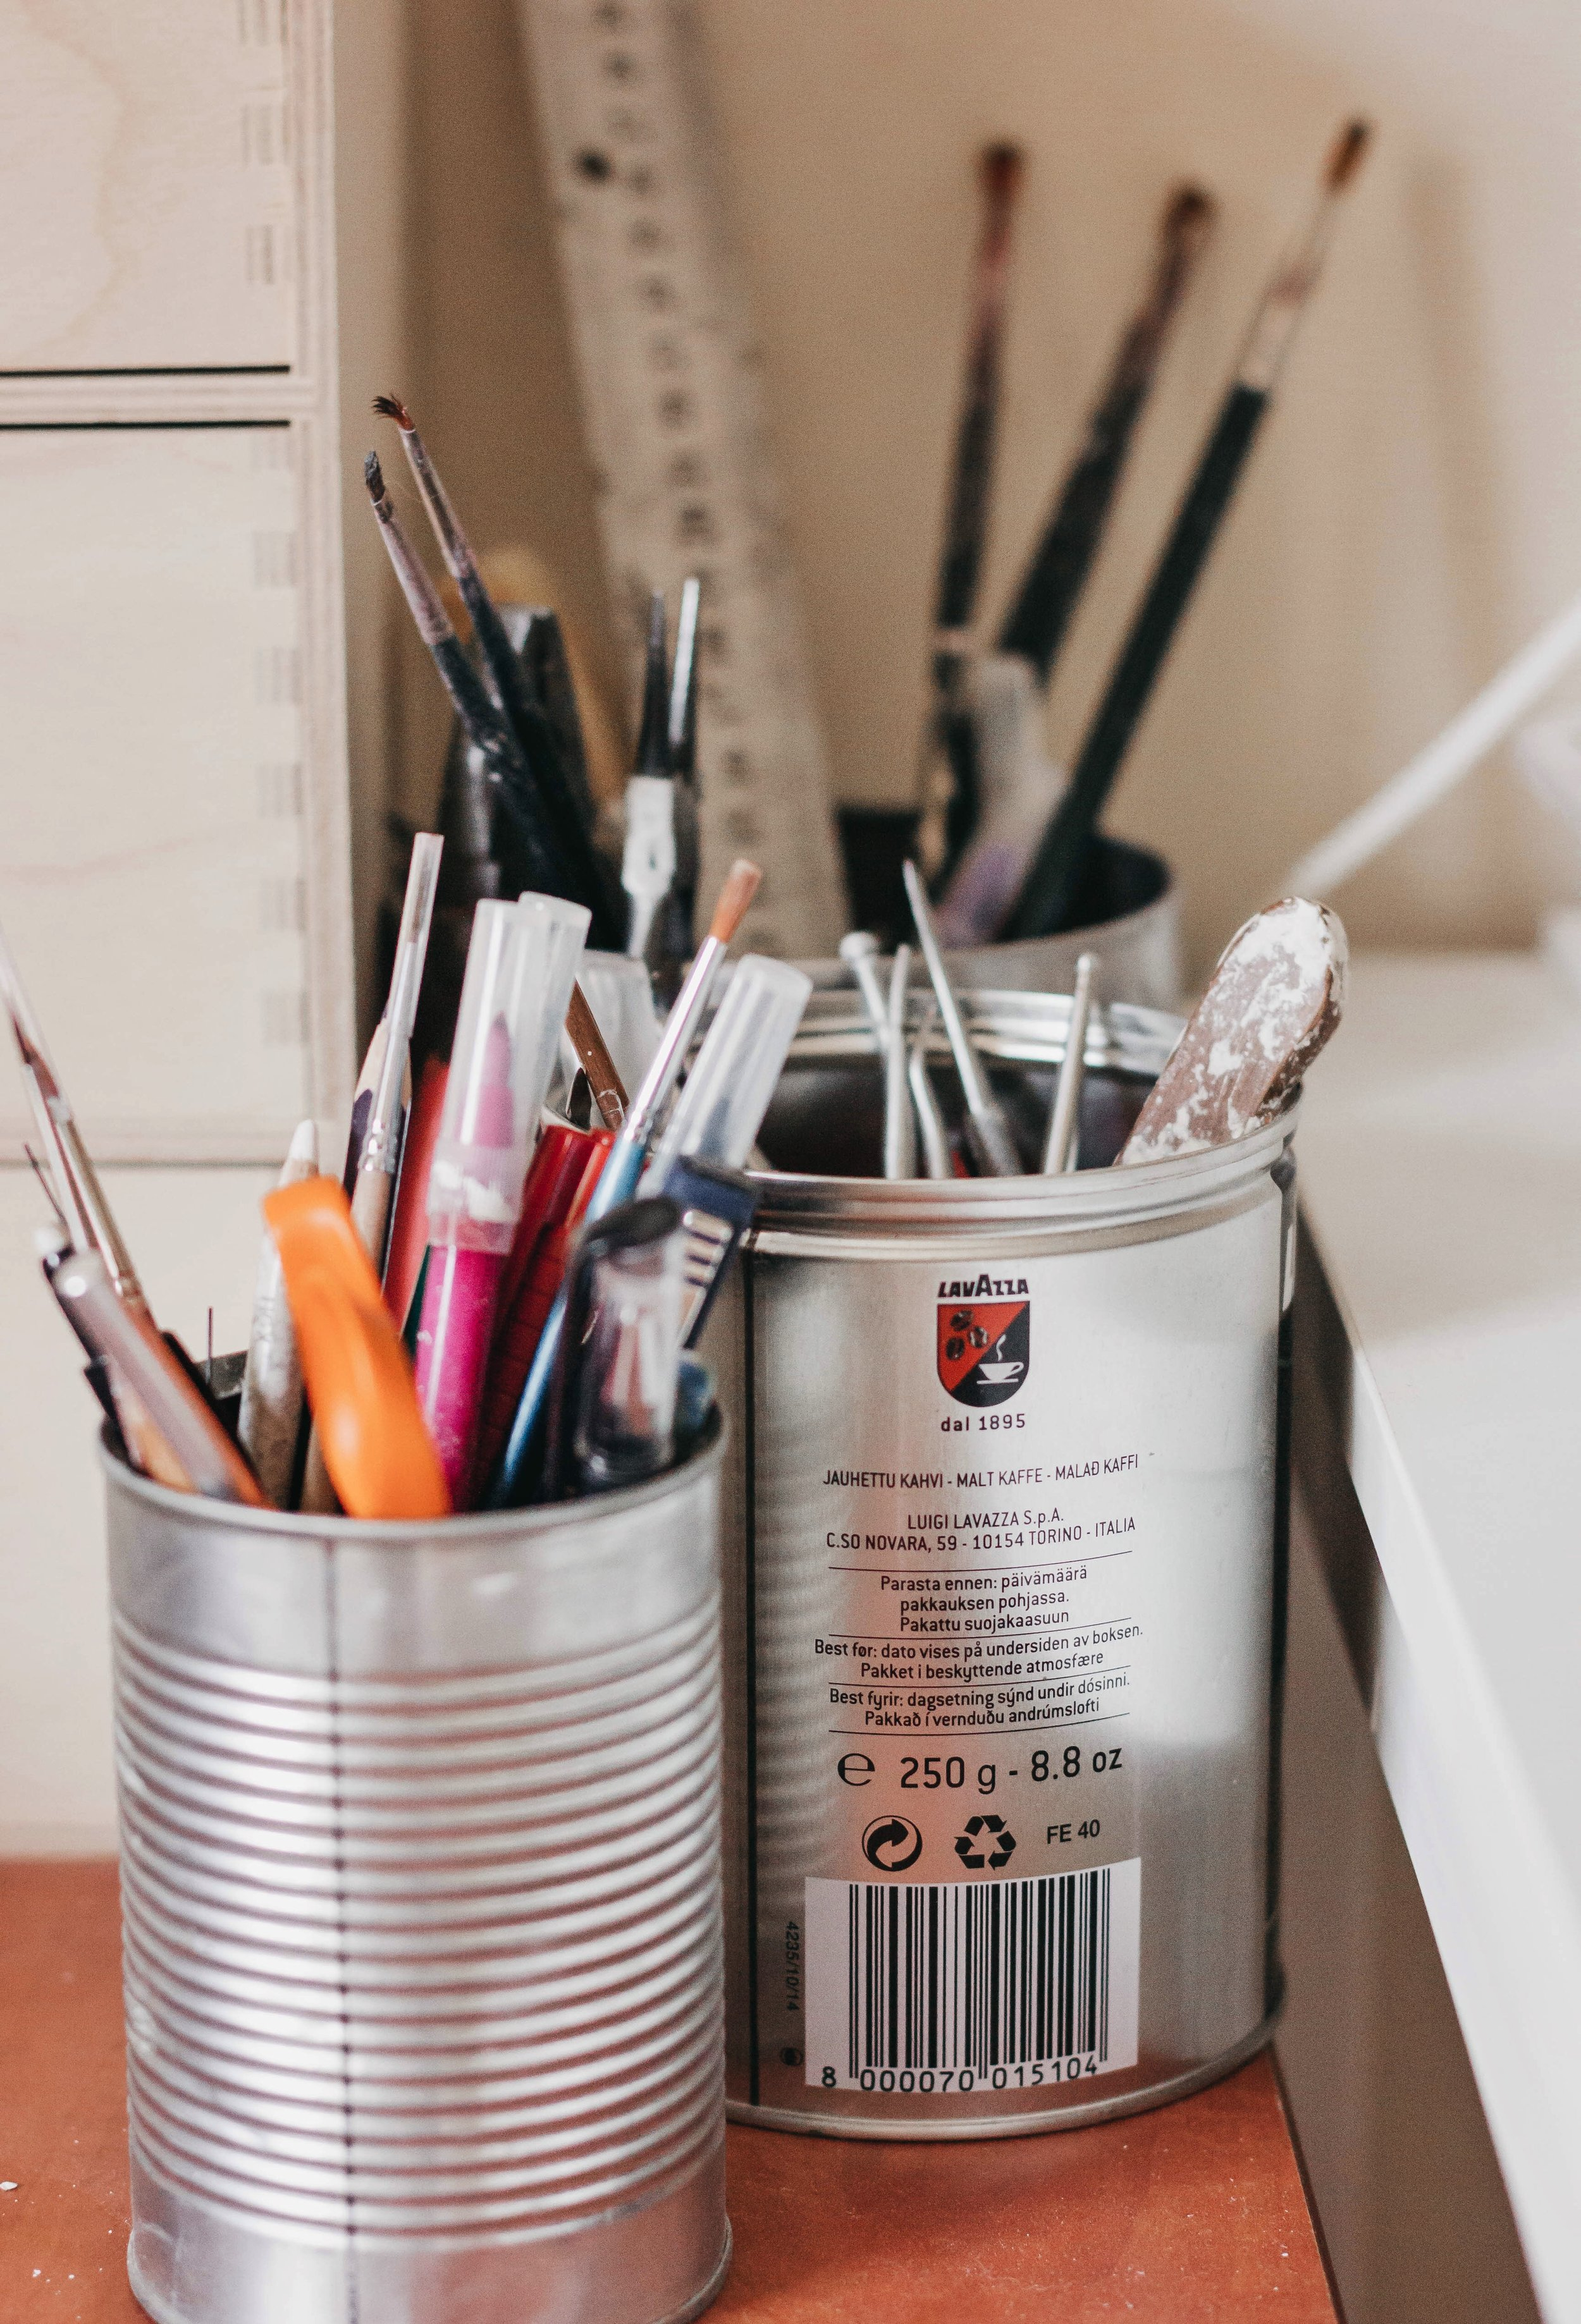 Reuse when possible! - These cans work very well holding my pens, brushes and sculpting tools.